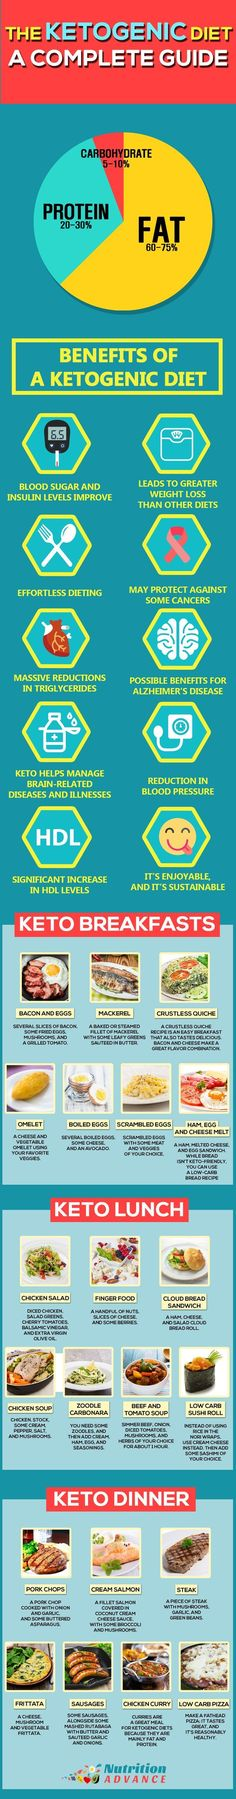 The Ketogenic Diet: An Ultimate Guide. This infographic shows some of the benefi